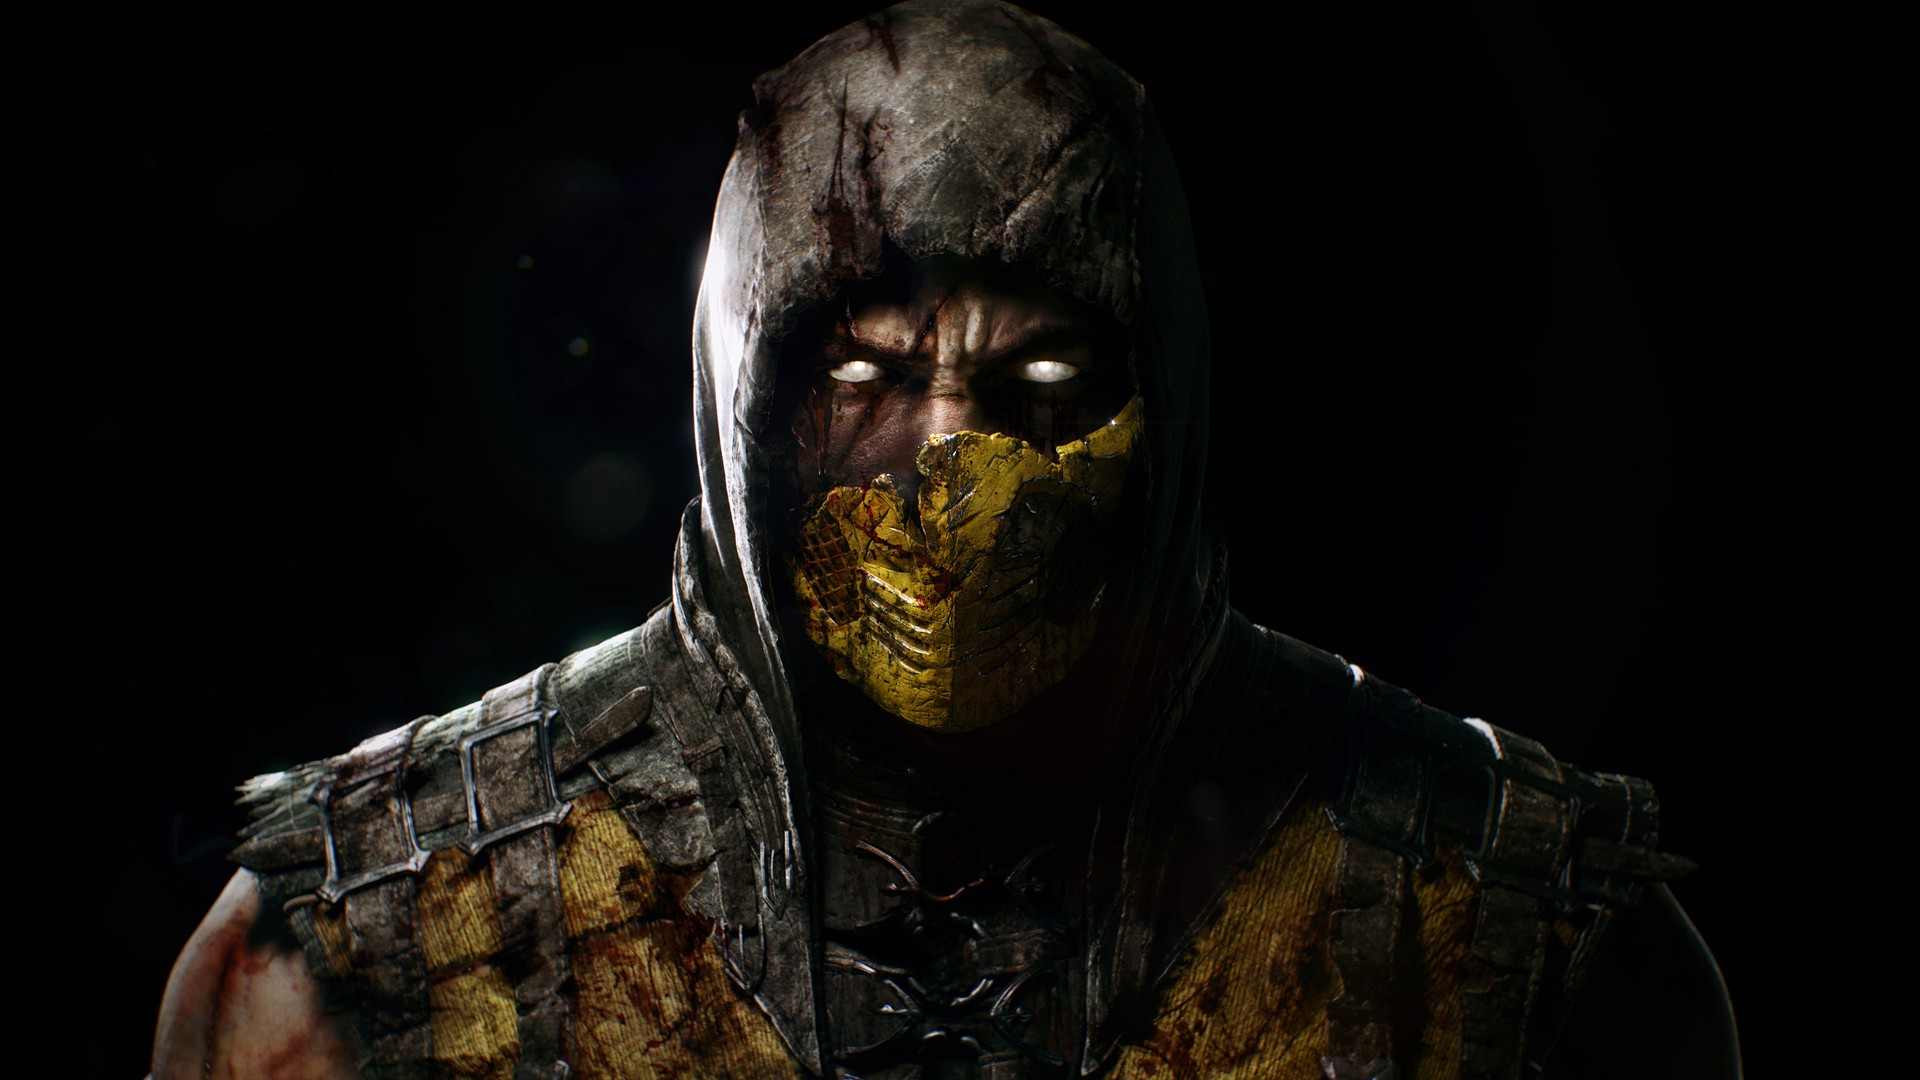 Video Game   Mortal Kombat X Mortal Kombat Scorpion Wallpaper 1920x1080